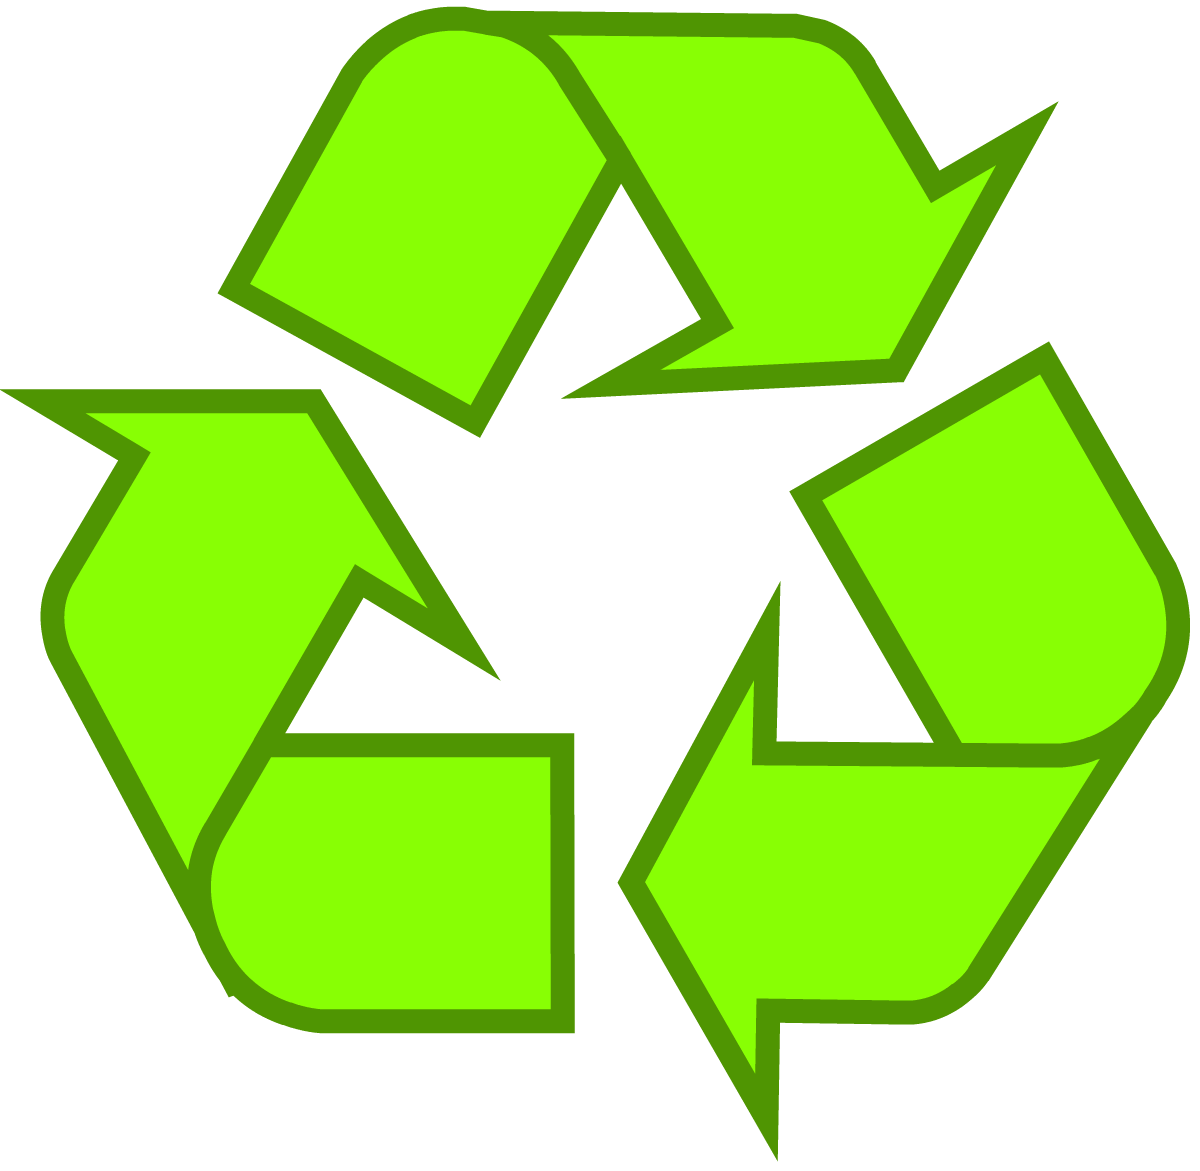 Recycling Symbol Icon Outline Solid Light Green Nicotine